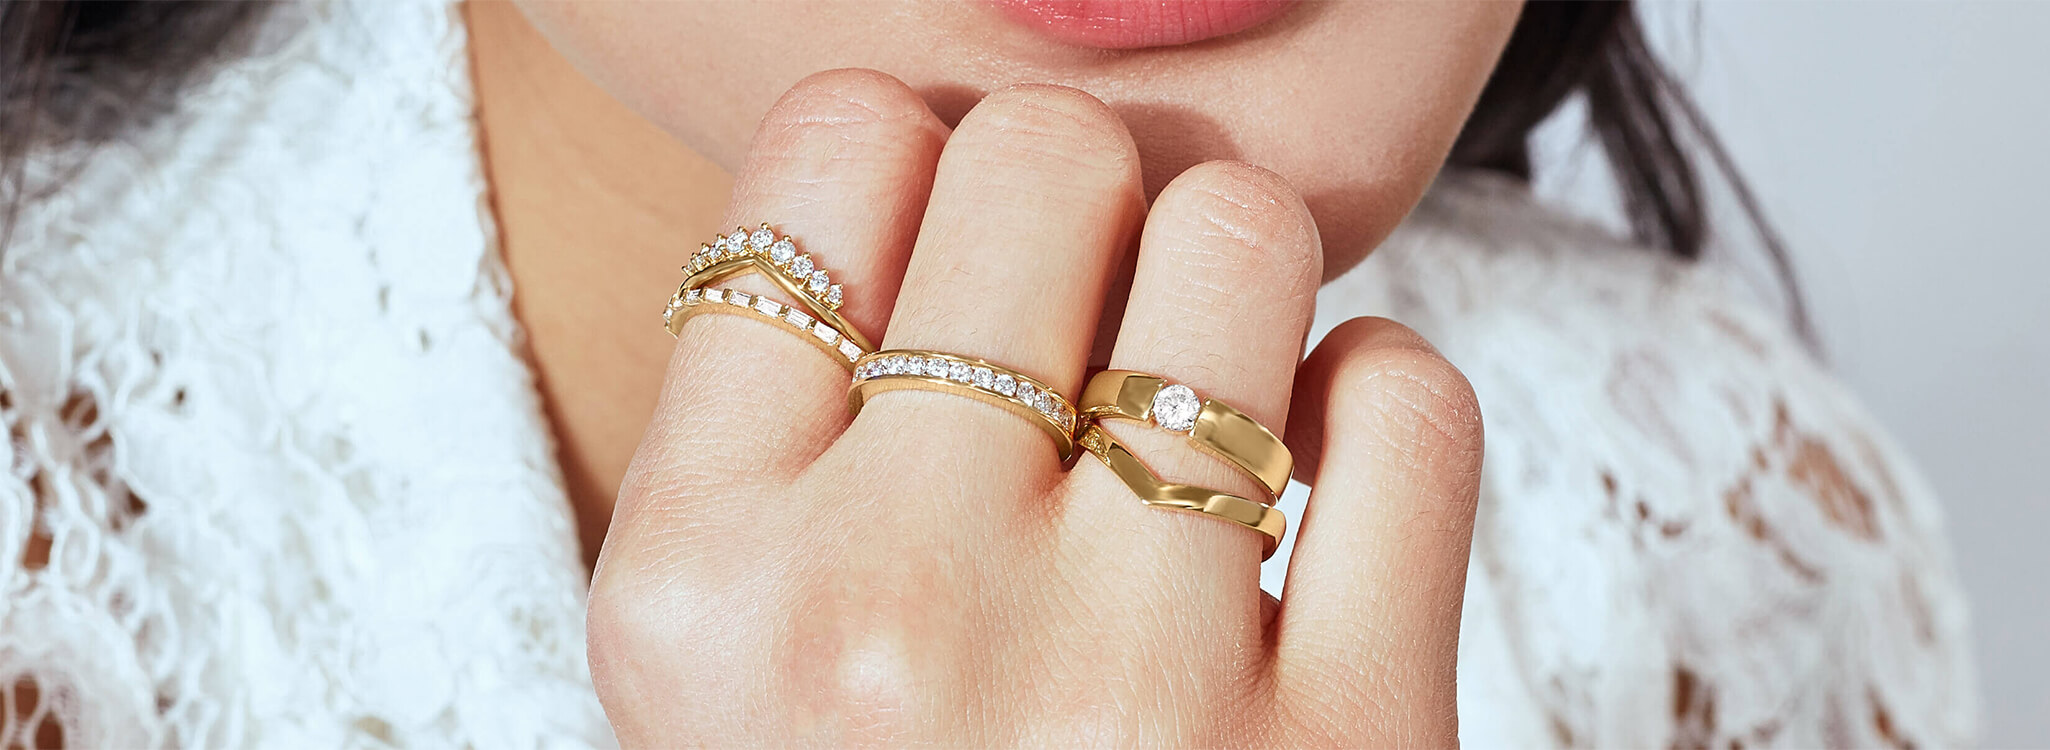 Model wearing 5 Ecksand rings in yellow gold with diamonds